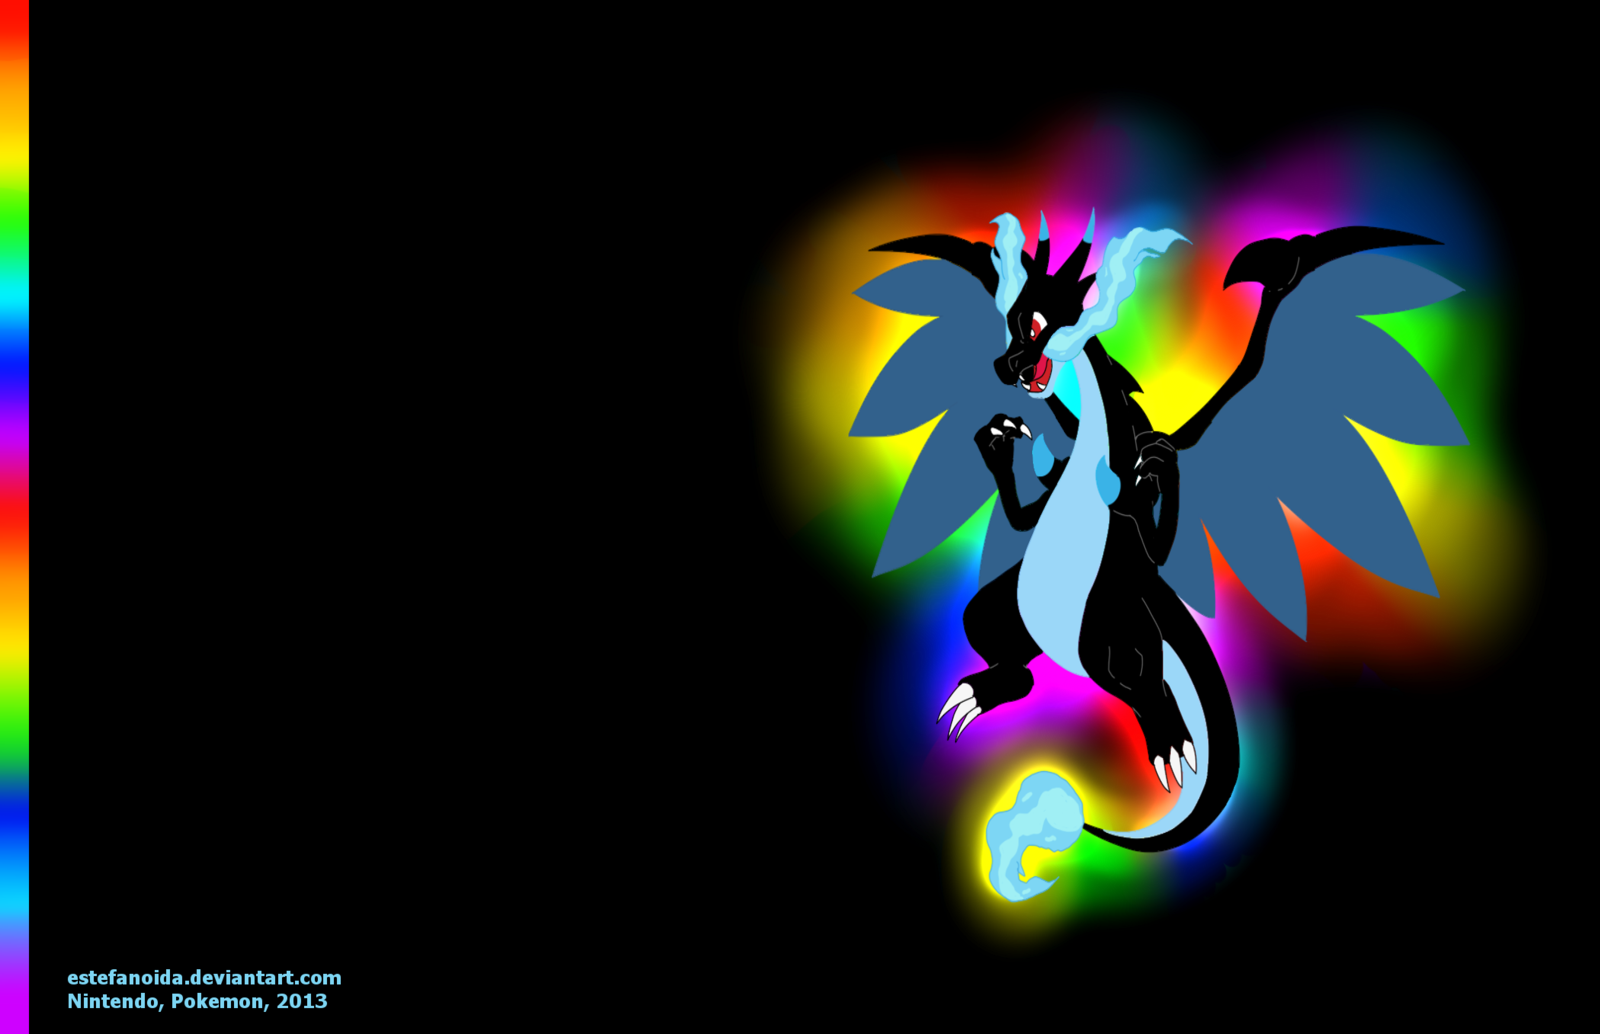 Mega Charizard x Wallpaper hd Related Post Mega Charizard x 1600x1034